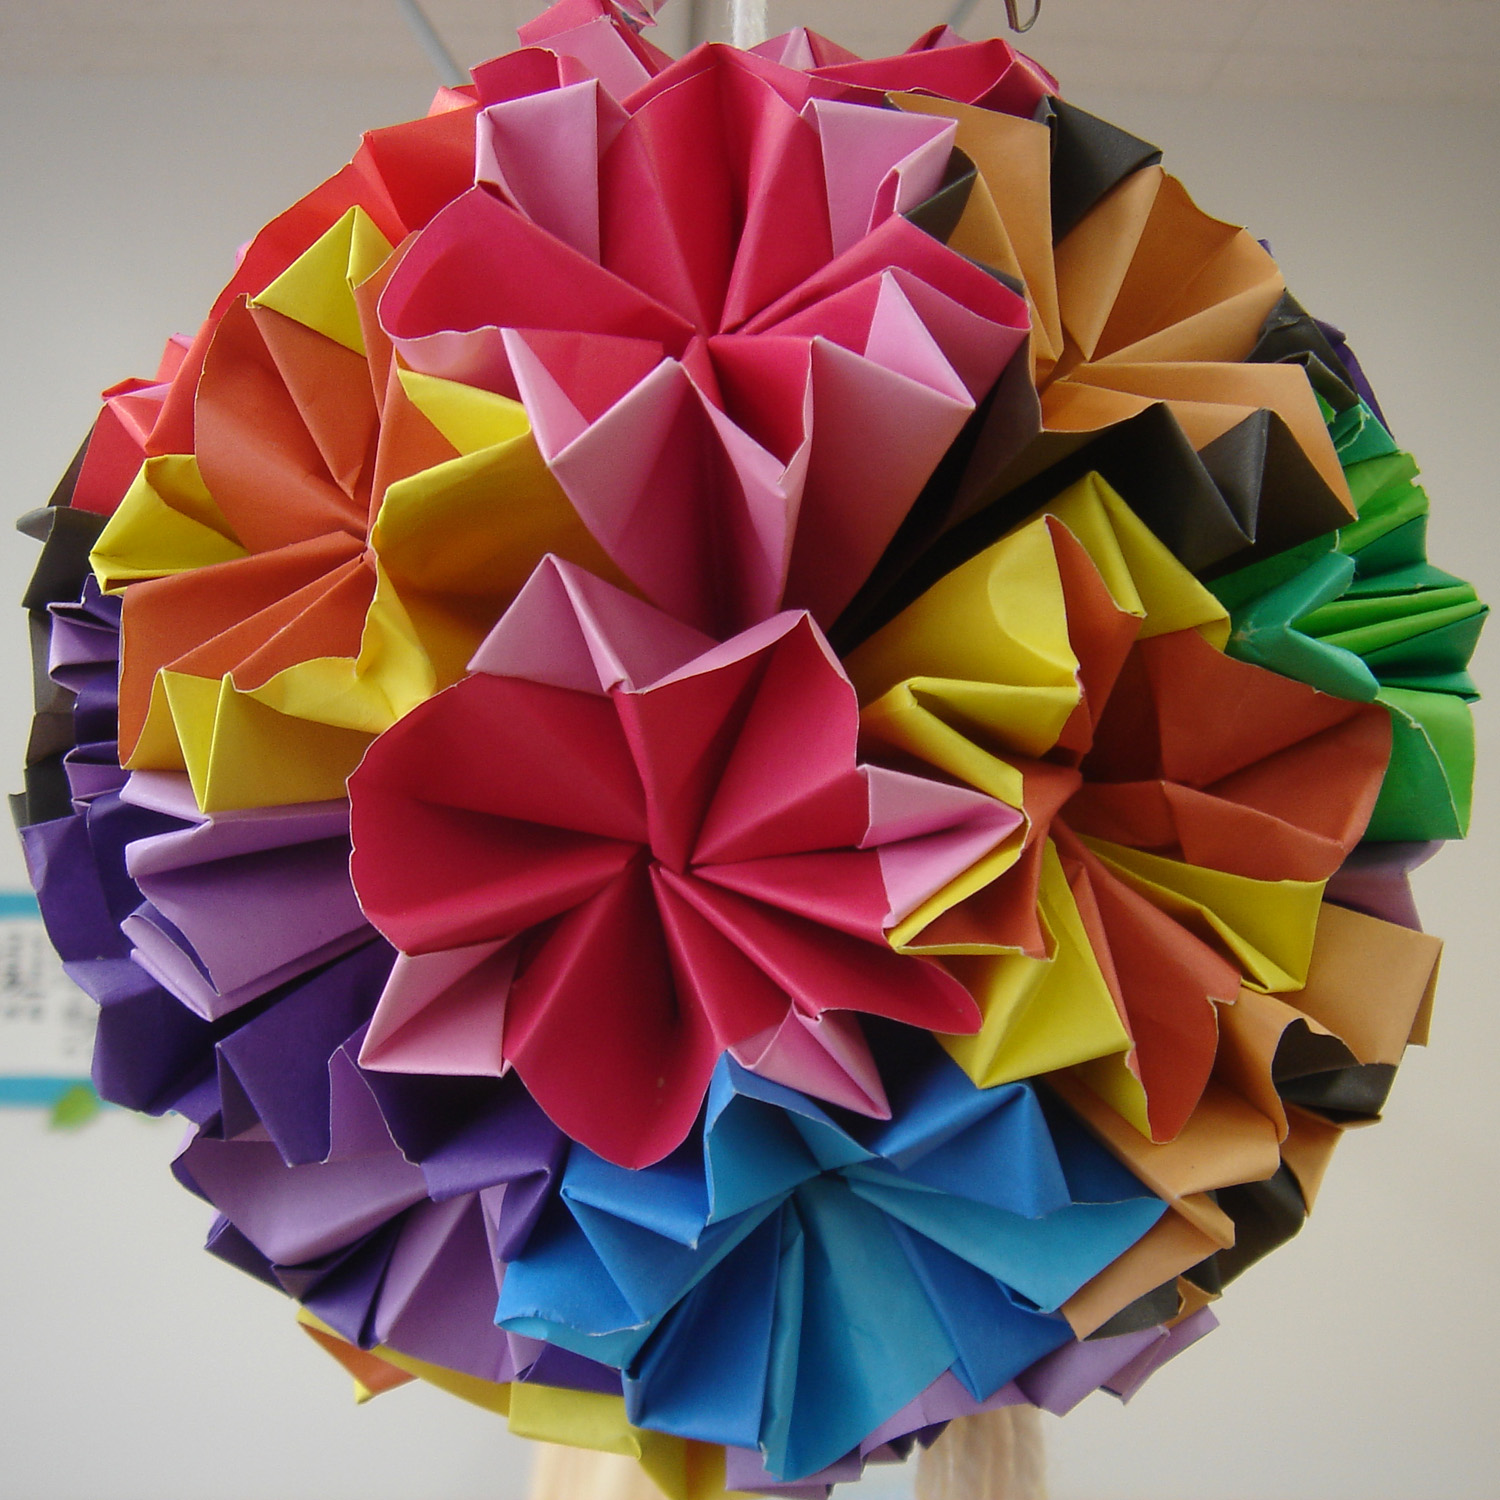 File:Origami ball.jpg - Simple English Wikipedia, the free ...